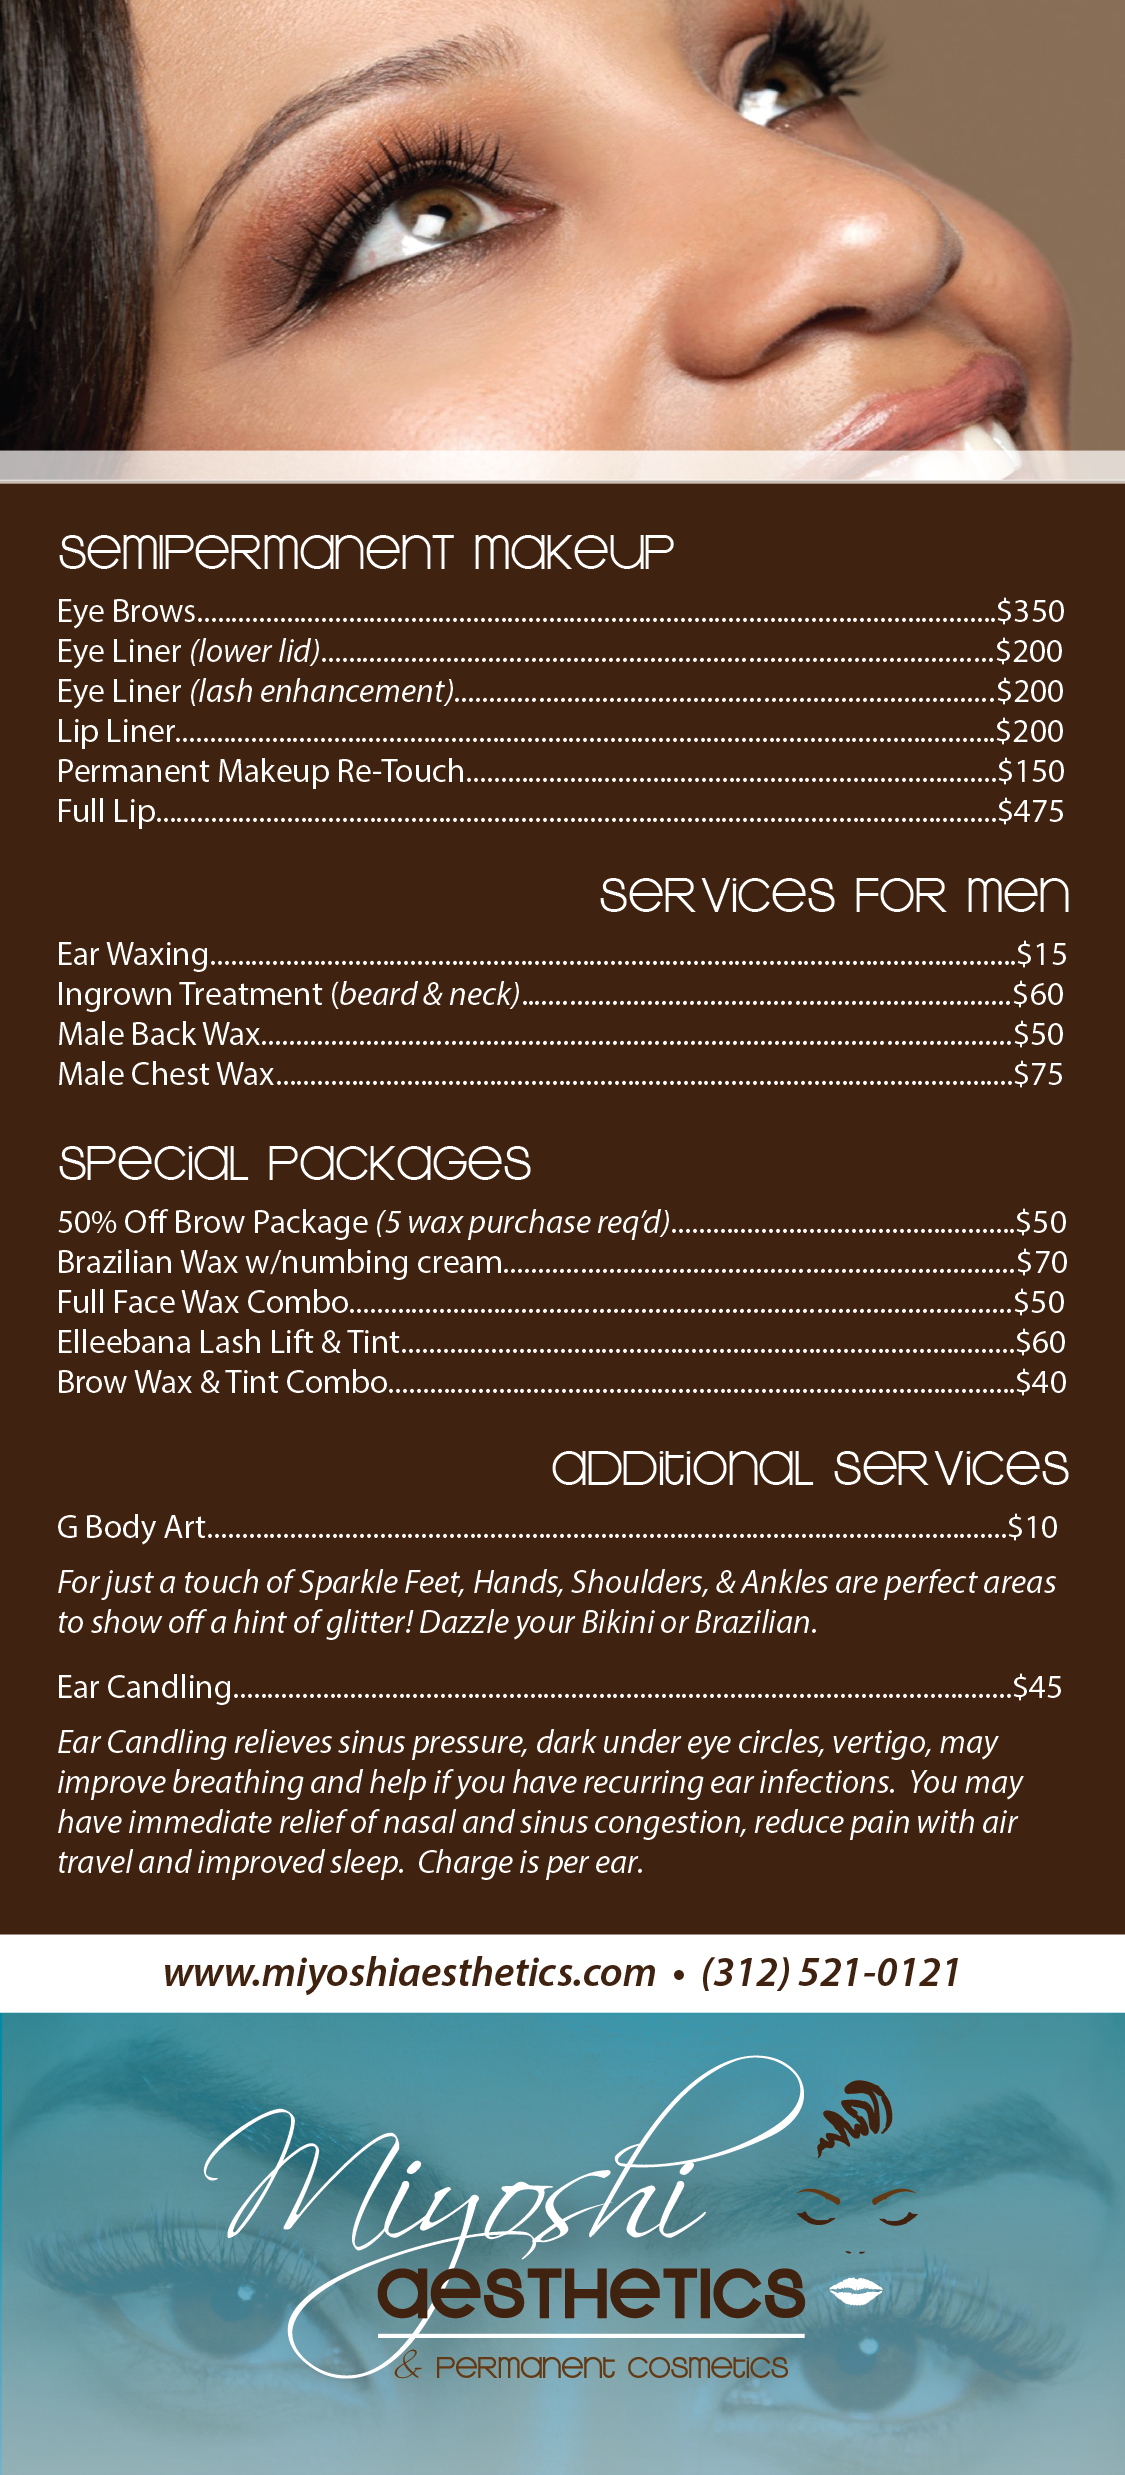 Menu/Services Card 4x9